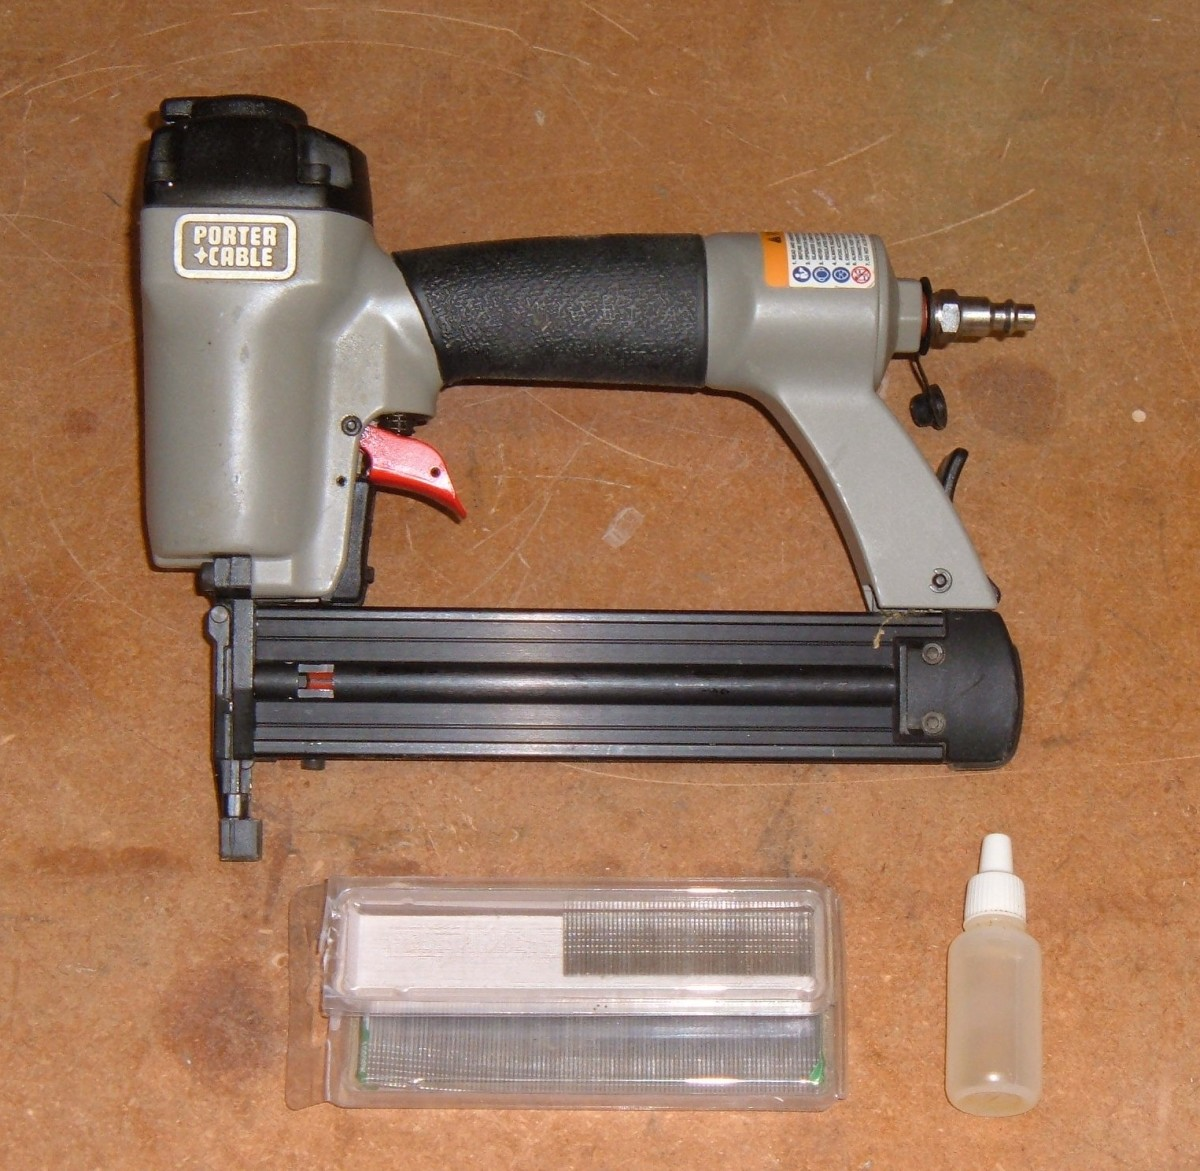 DIY Arts & Crafts: Is a Brad Nailer Right For You?